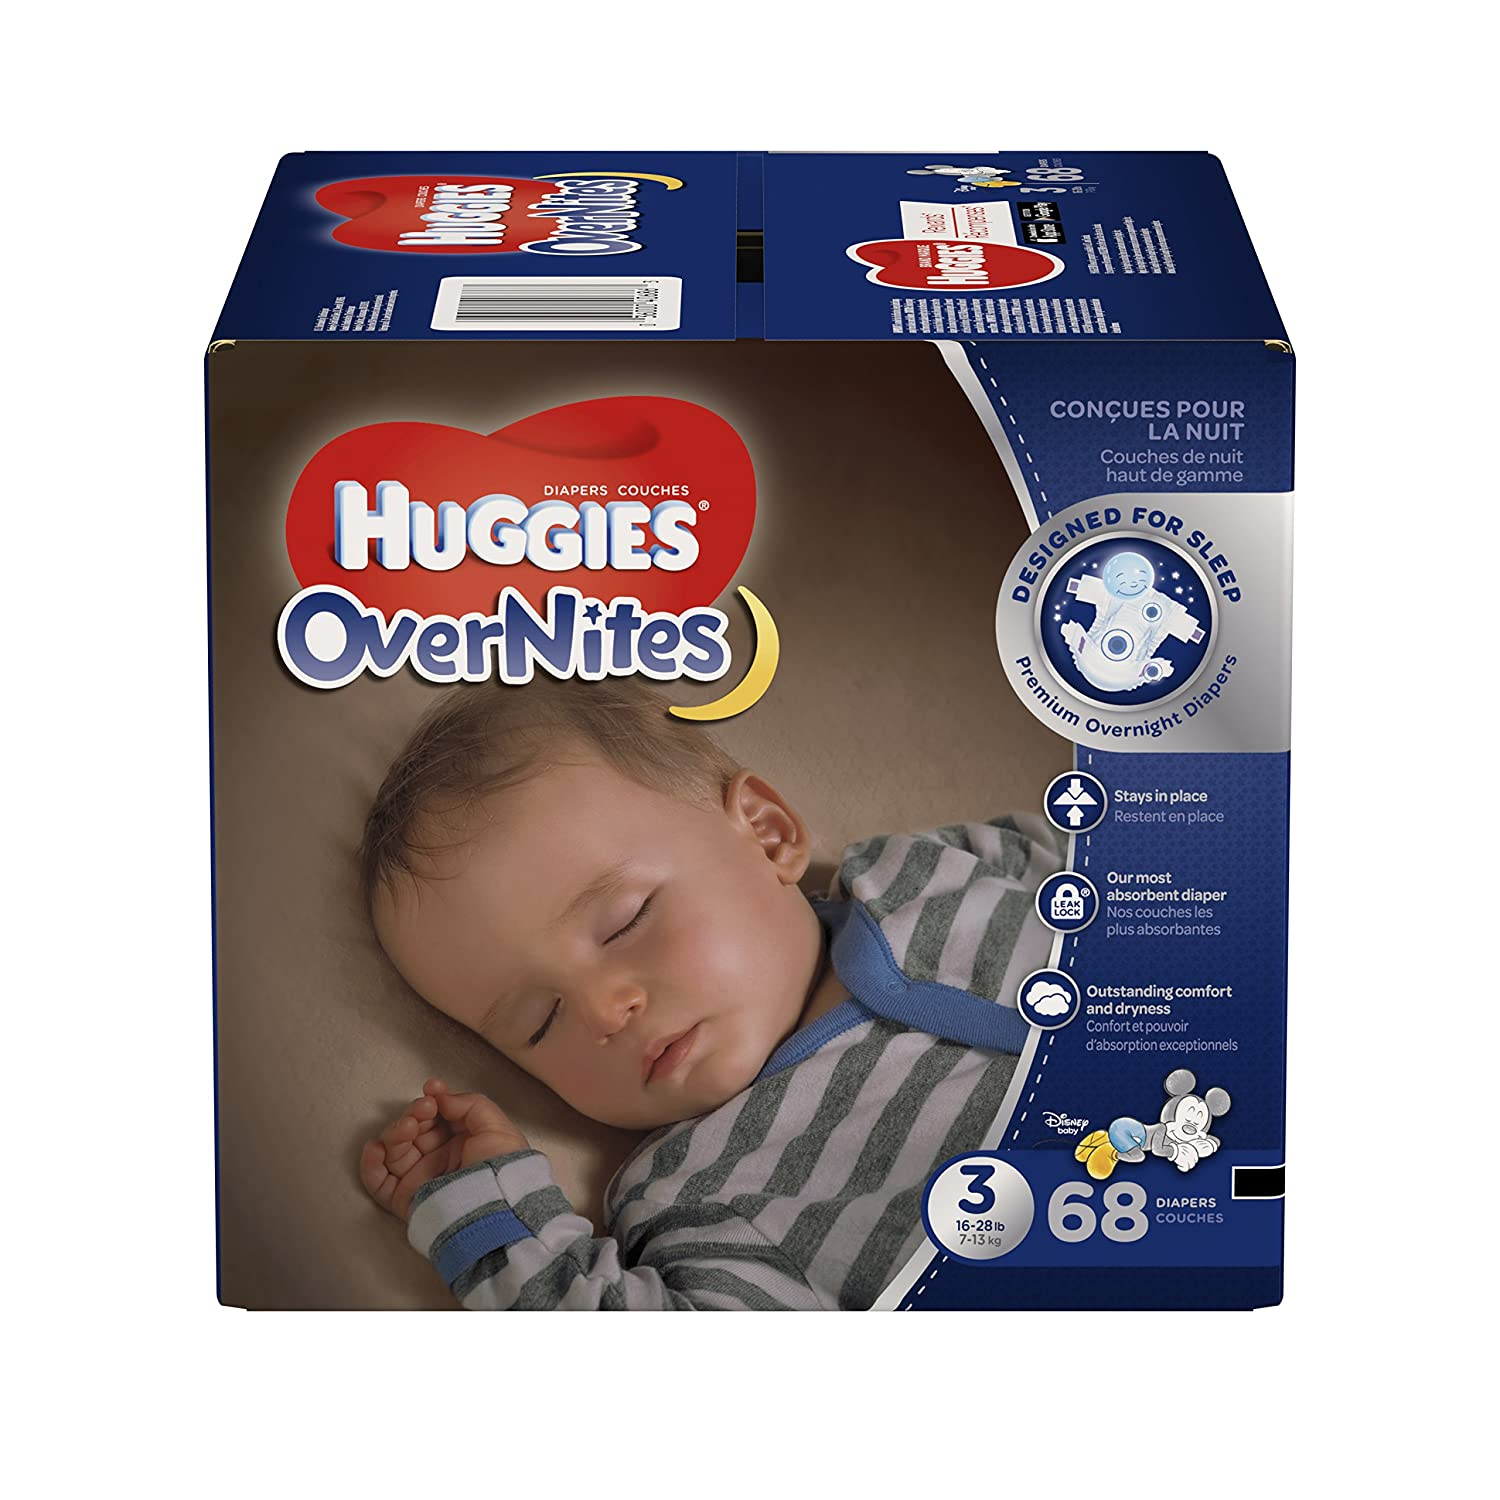 HUGGIES OVERNITES, Night Time, Baby Diapers, Size 3, 68ct Kimberly-Clark Corp. CA 40686